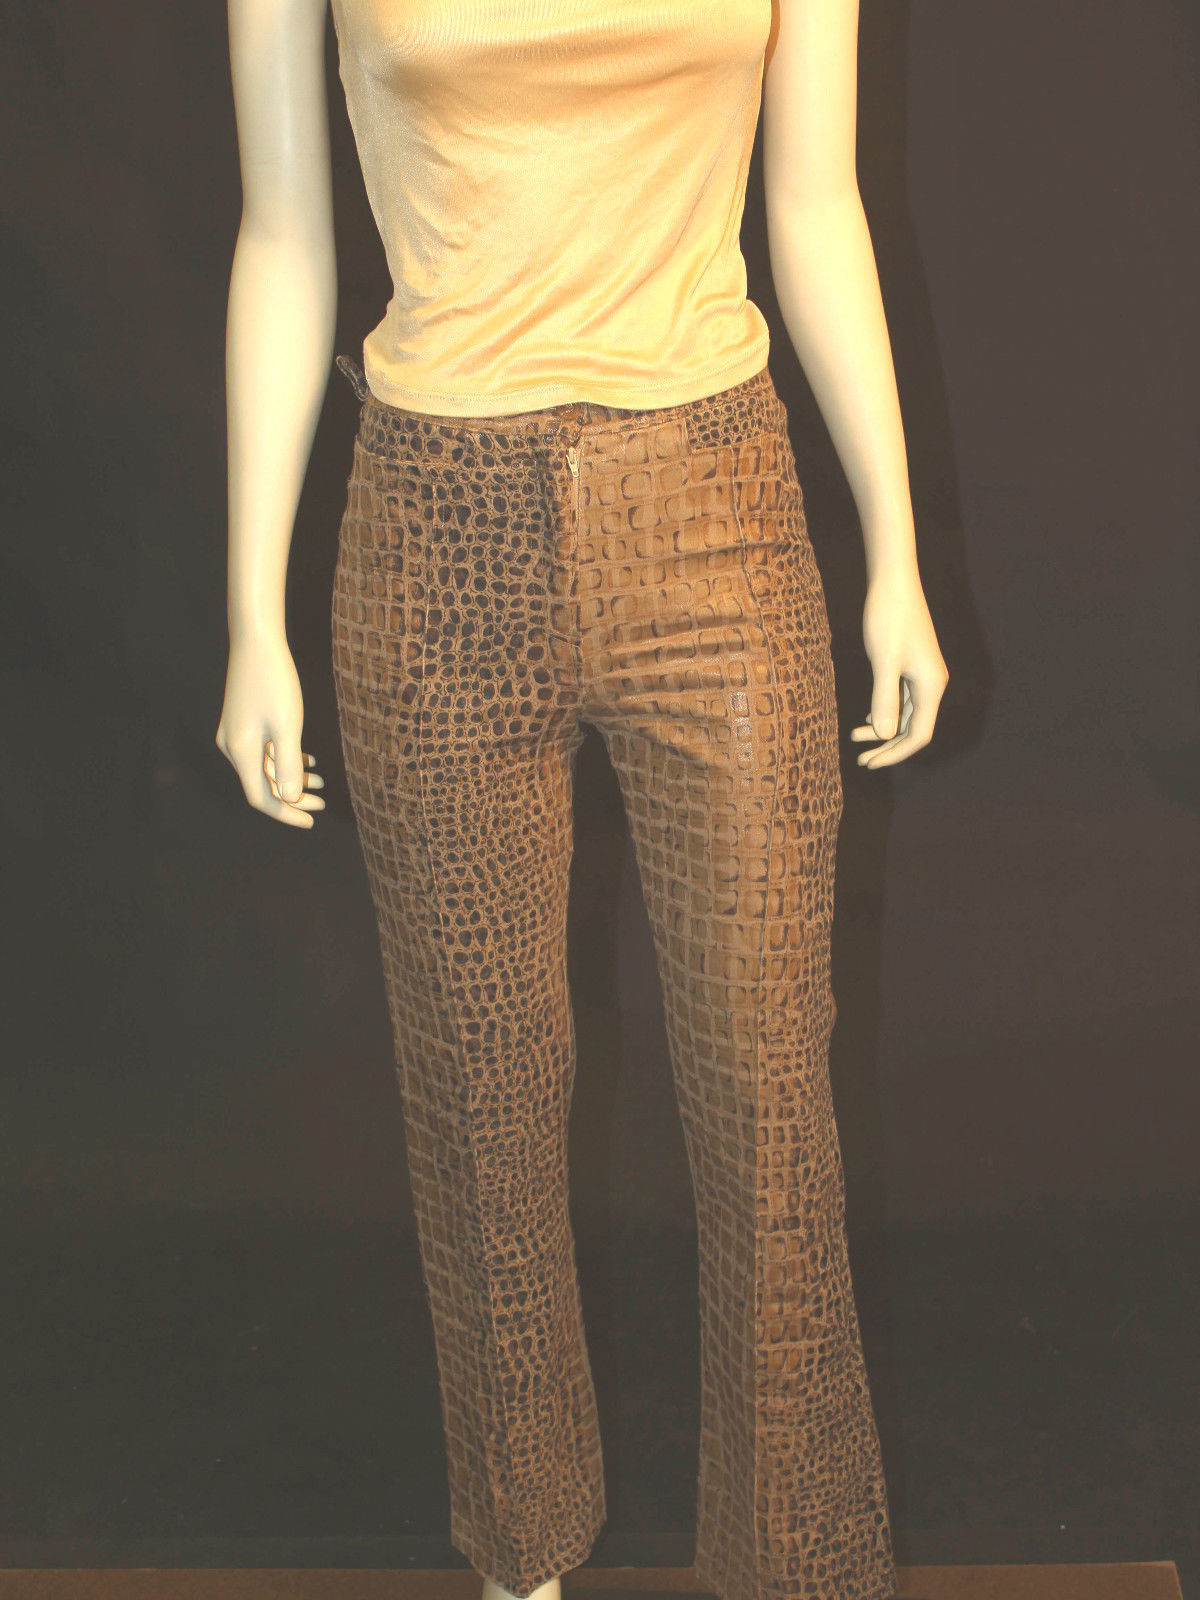 Primary image for French Connection crocodile patterned pants